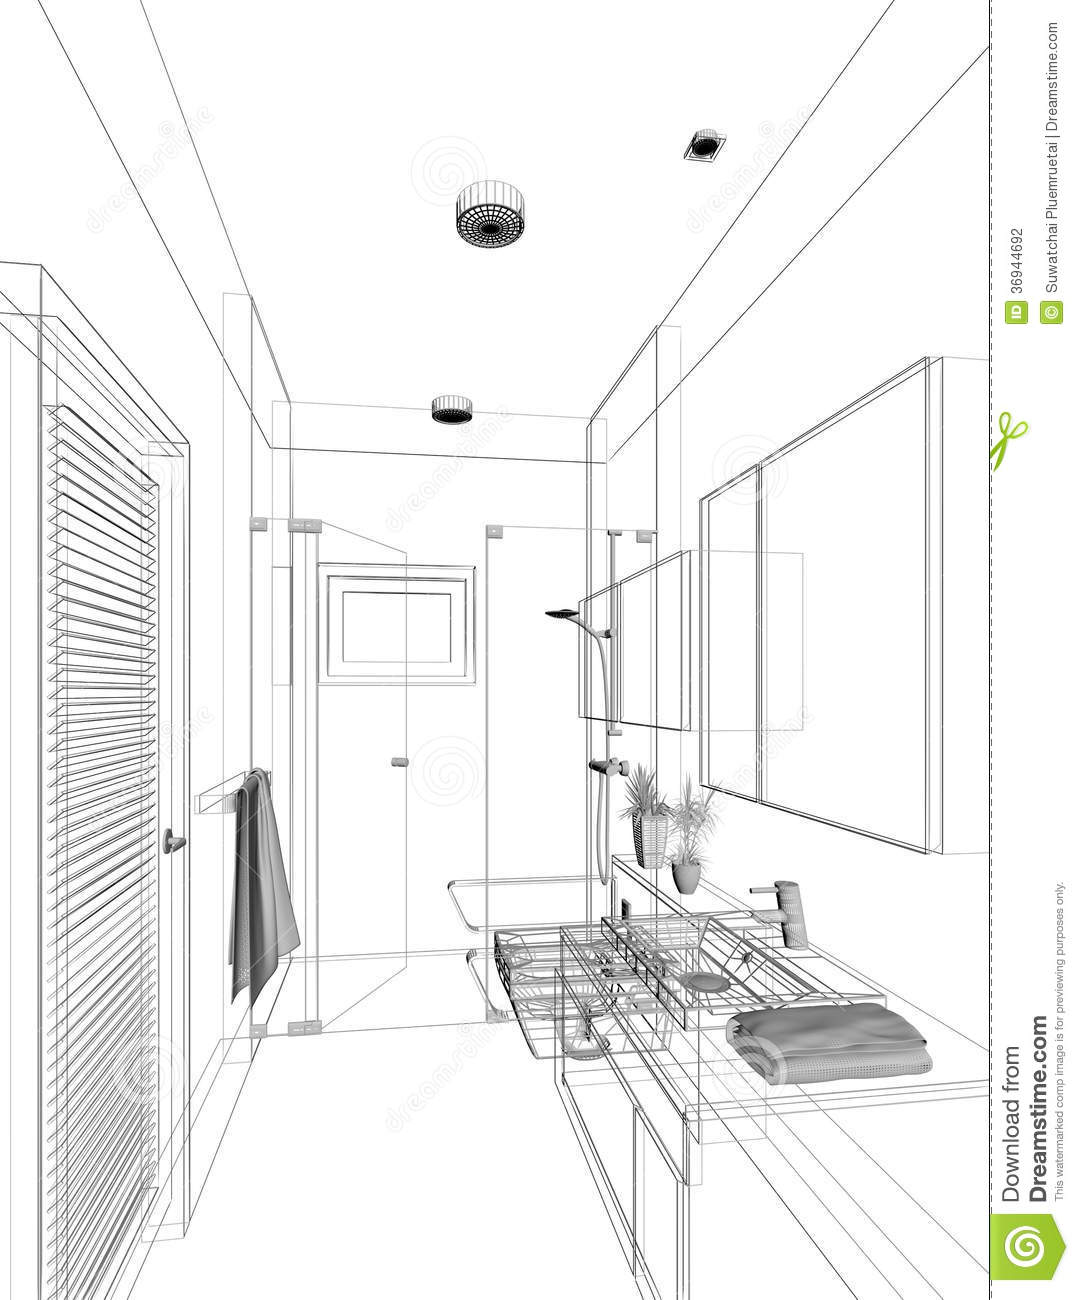 Bathroom Interior Design Sketches